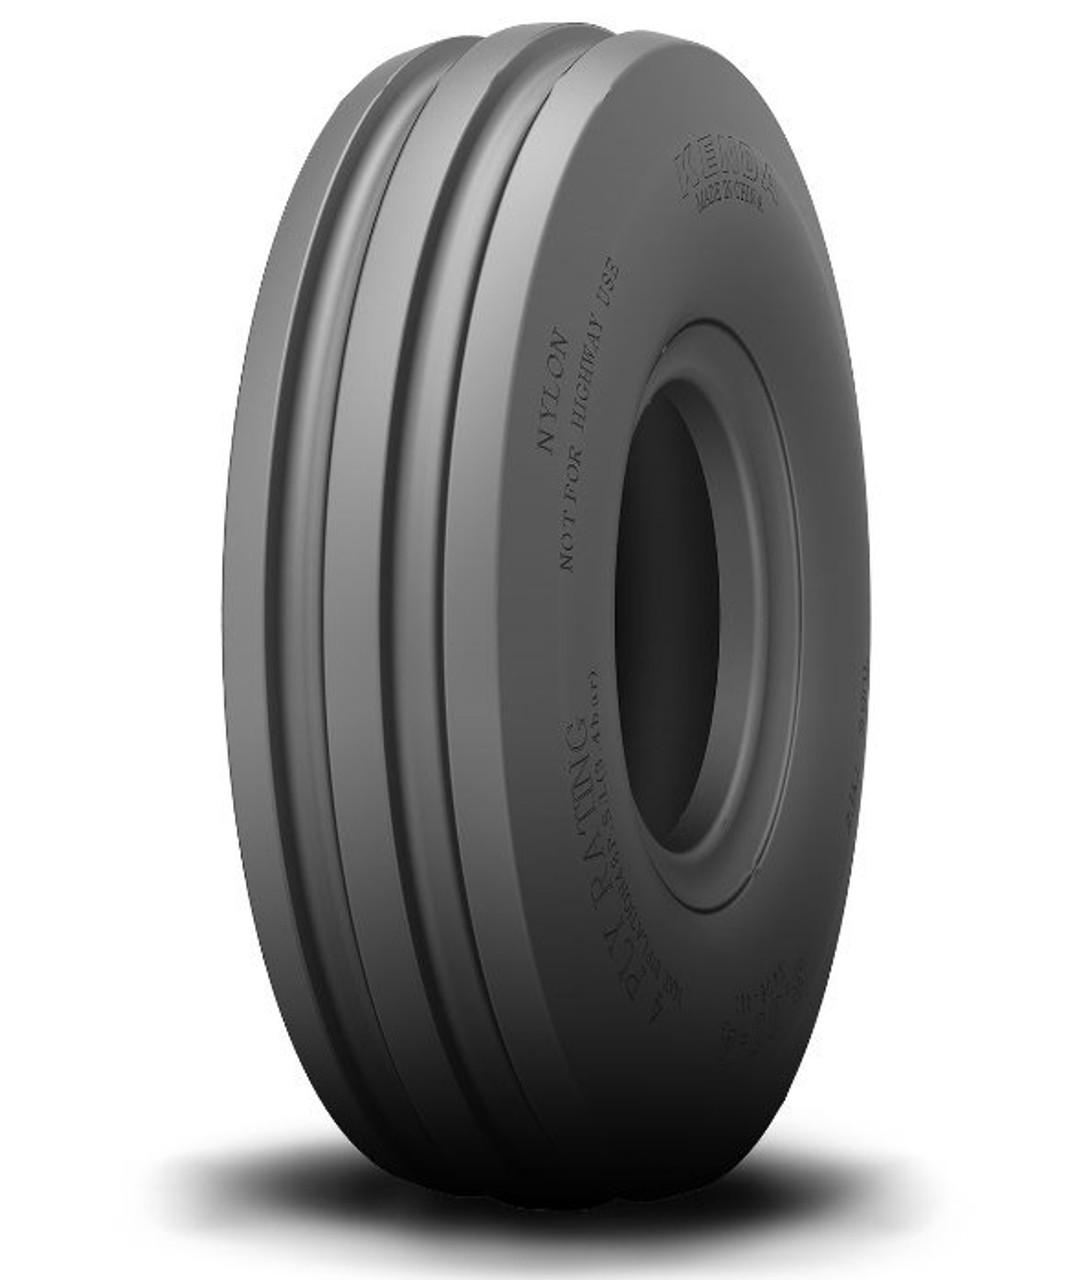 2 18X6.50-8 TURF LAWN MOWER HEAVY DUTY 4 PLY TWO NEW TUBELESS TIRES 18 650 8